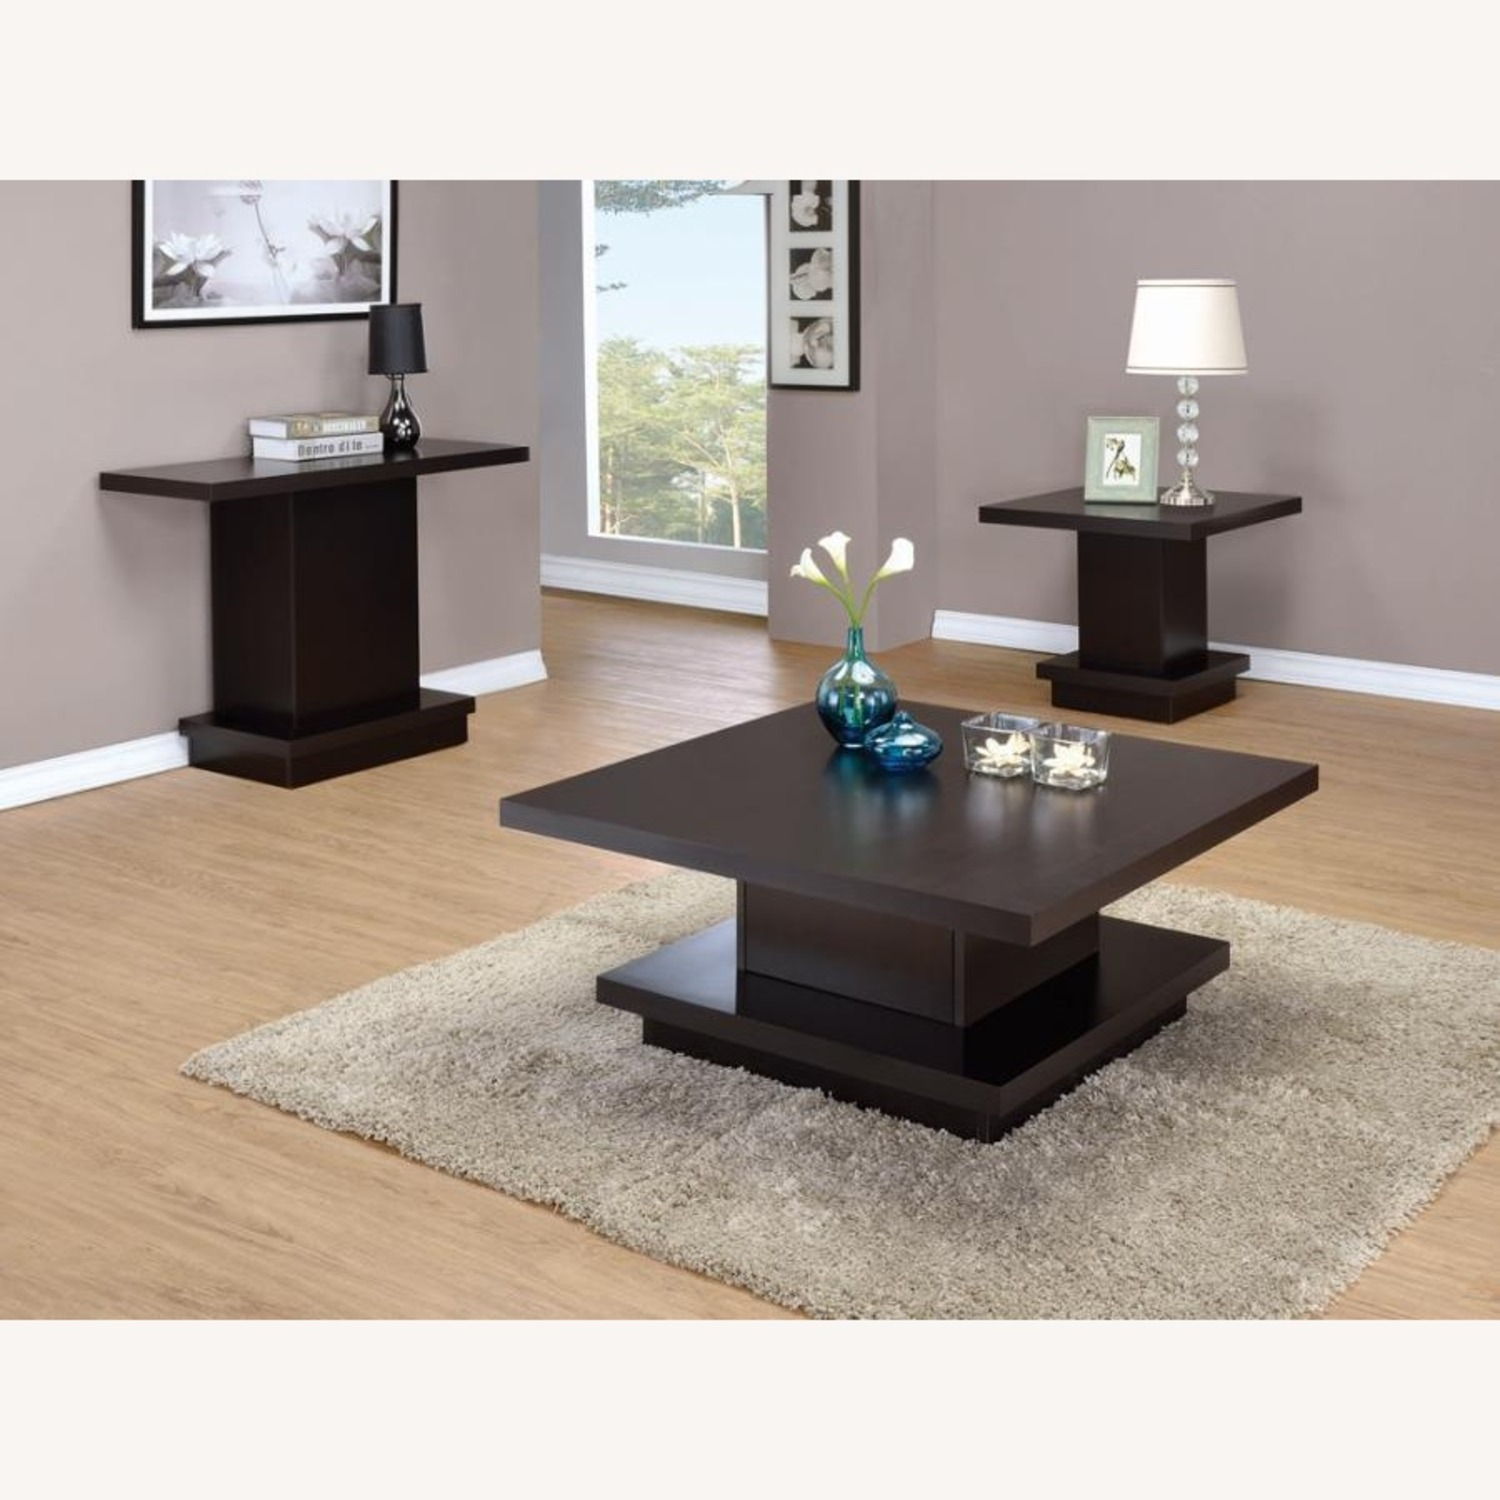 Pedestal-Style Sofa Table In Ric Cappuccino Finish - image-2